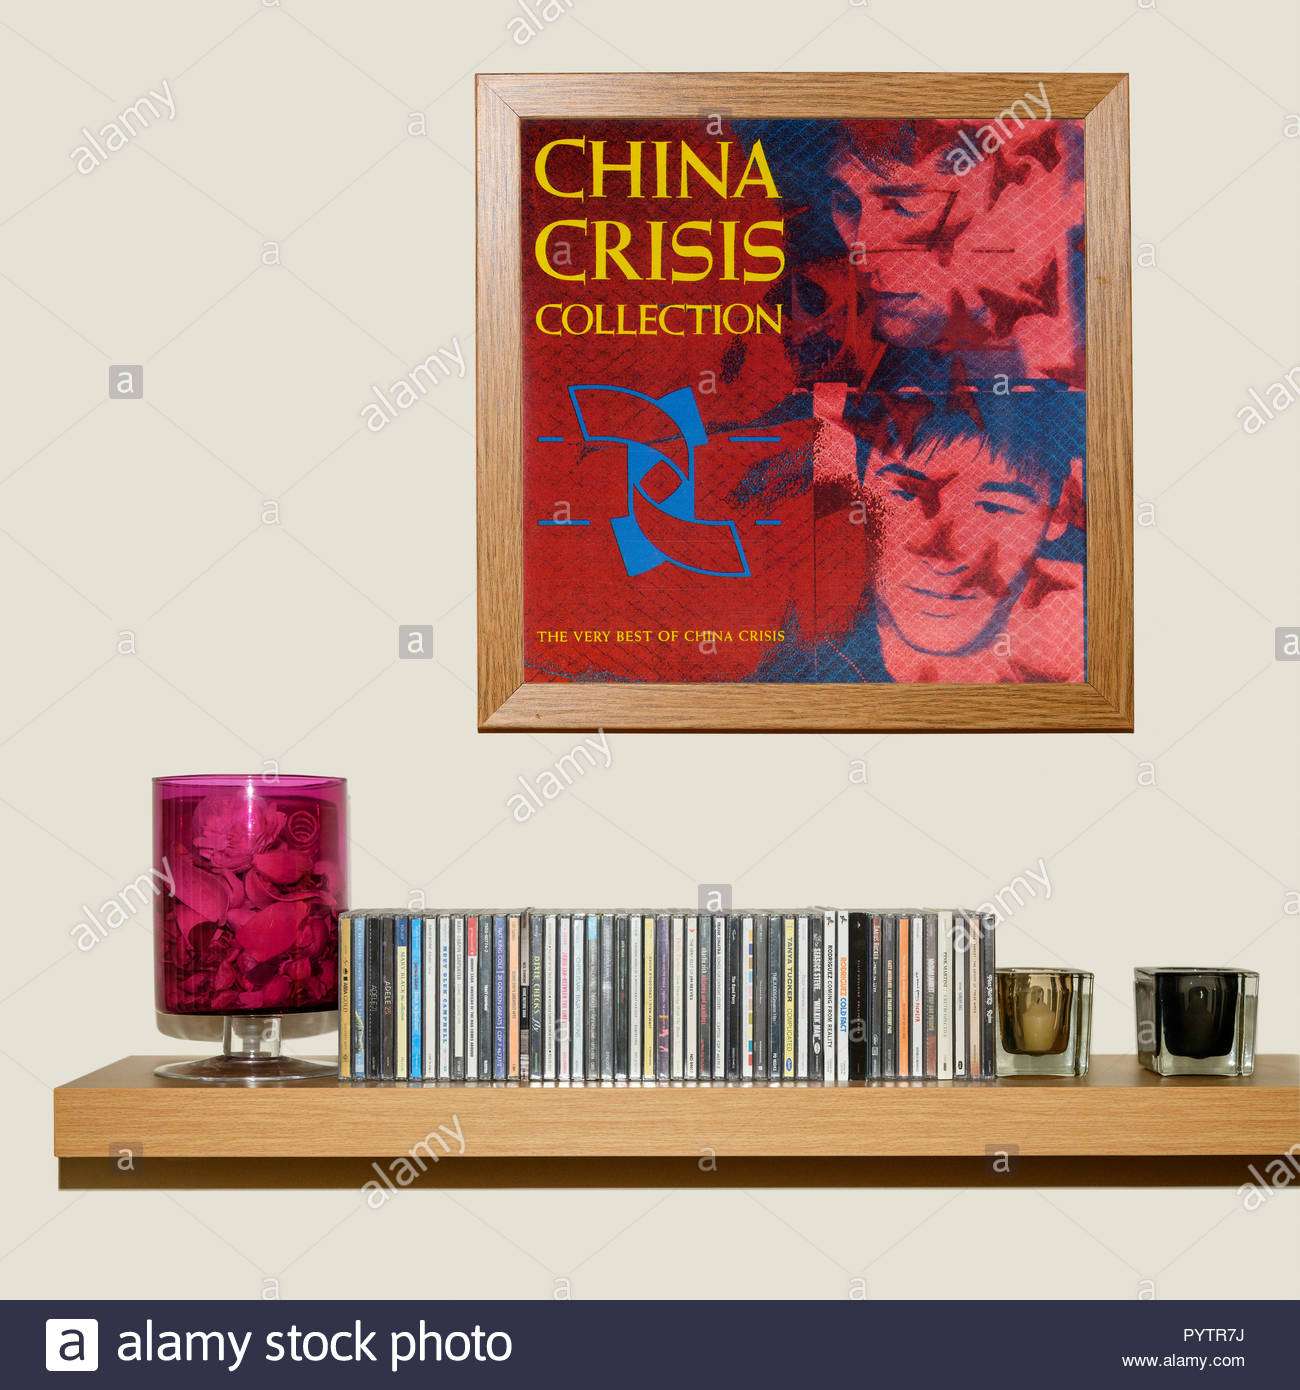 CD Collection and framed China Crisis collection album, England - Stock Image